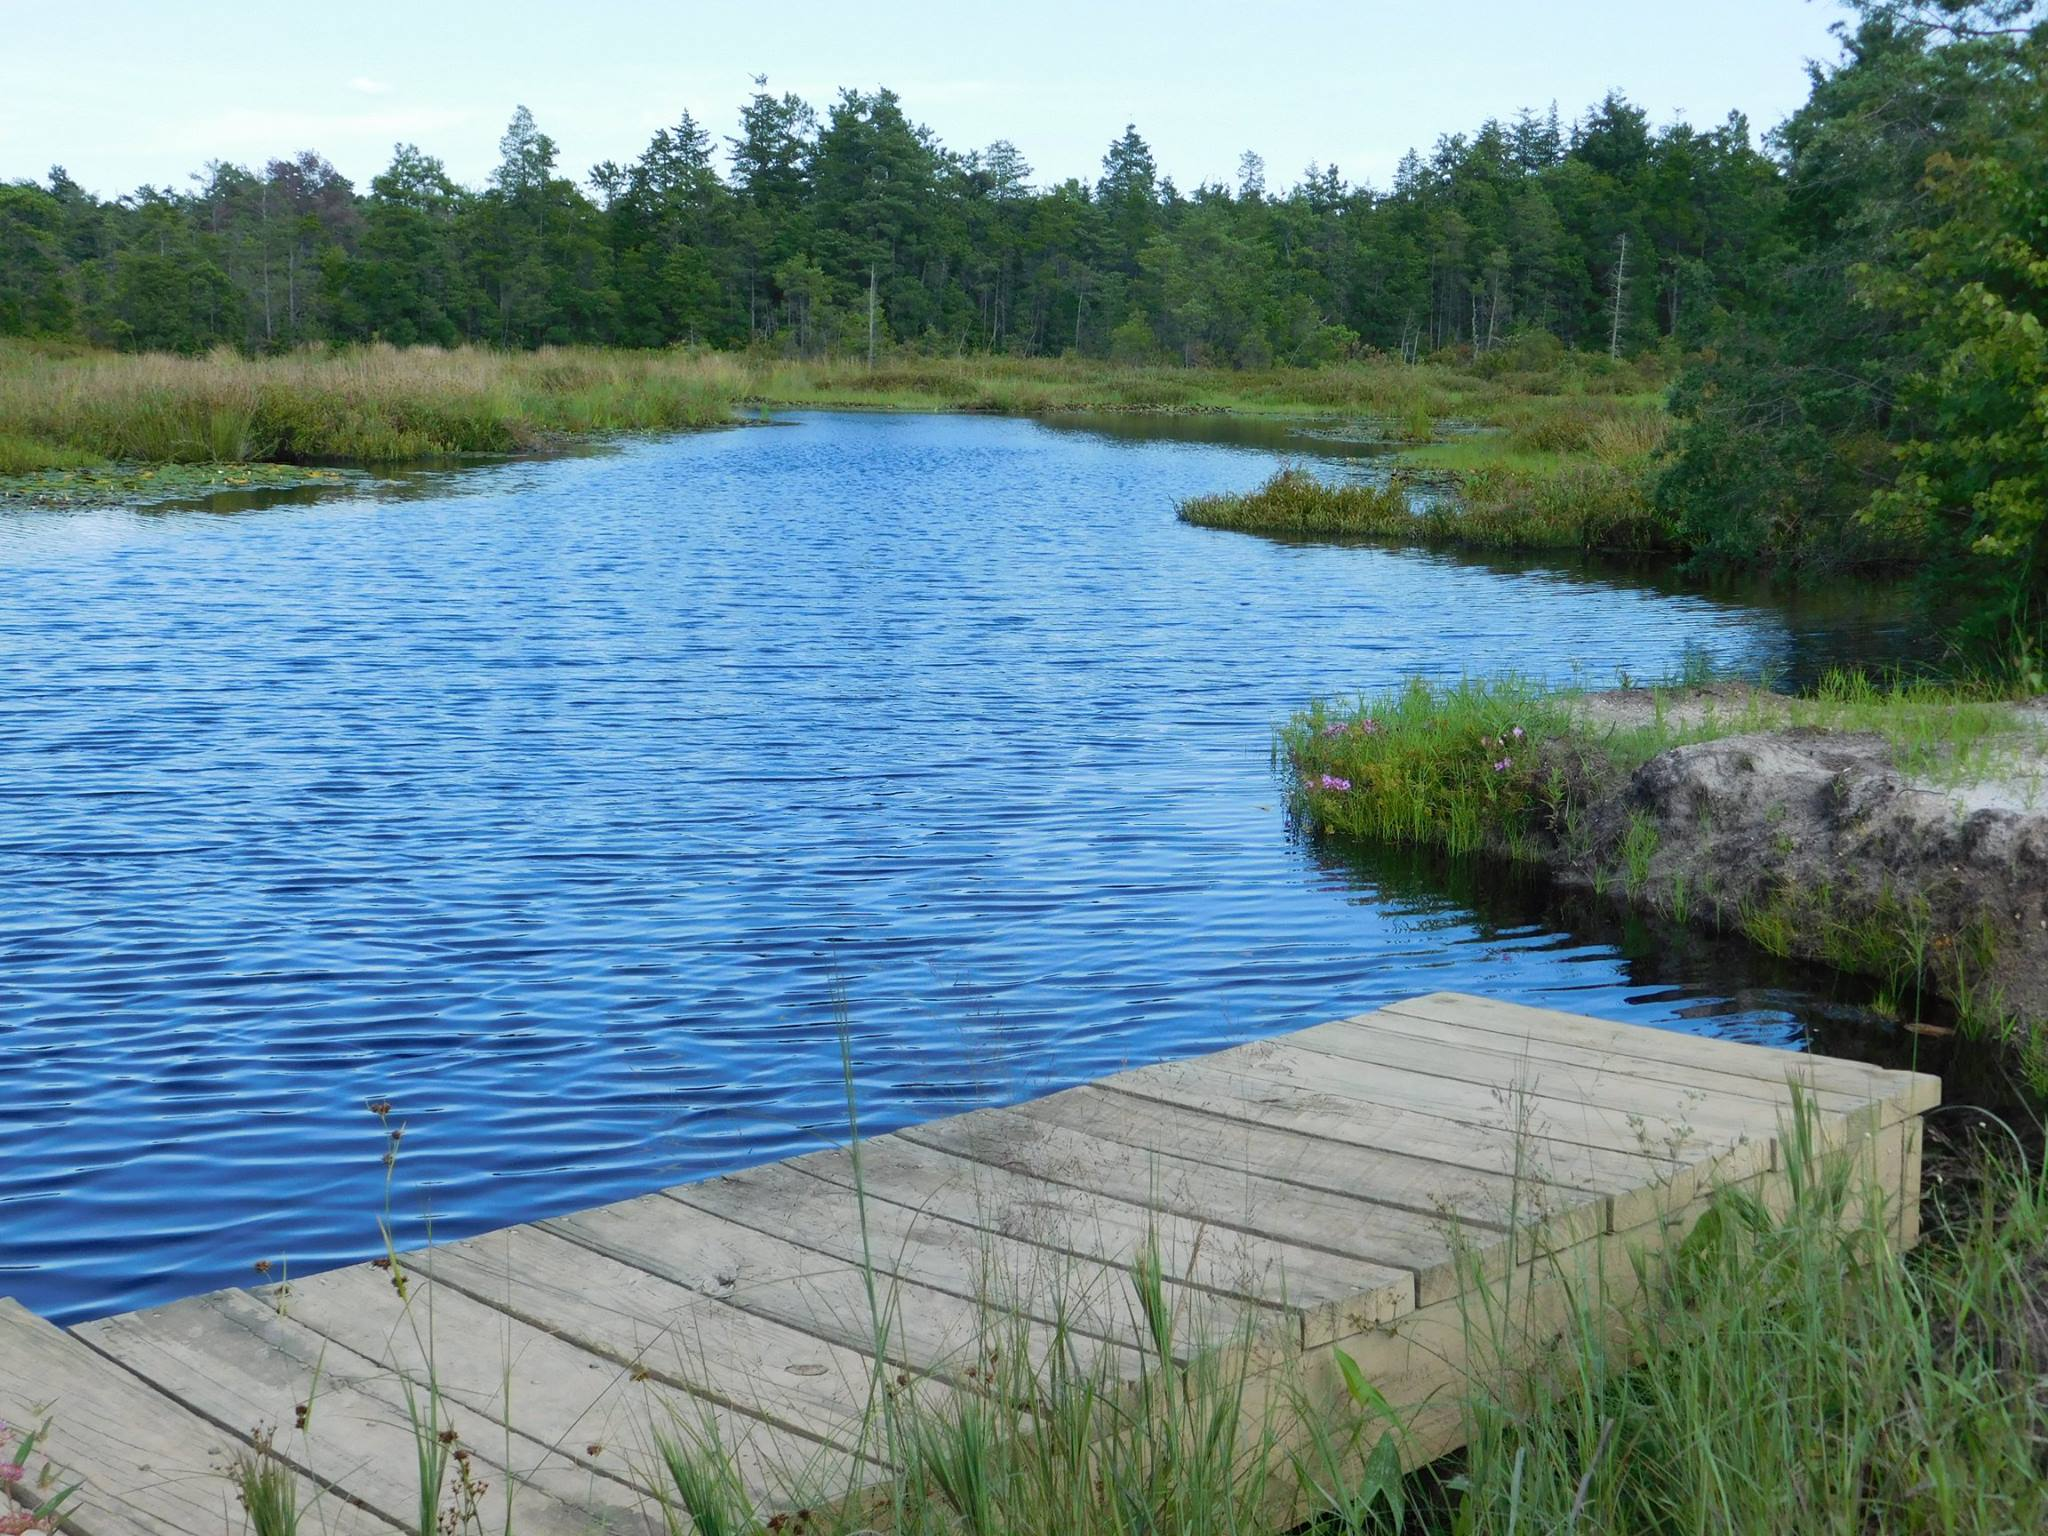 A variety of nature trails lead through the Pine Barrens woodland past ferns, moss, cedar, mountain laurel and out along the edges of waterways, blueberry and cranberry fields that stretch for miles.